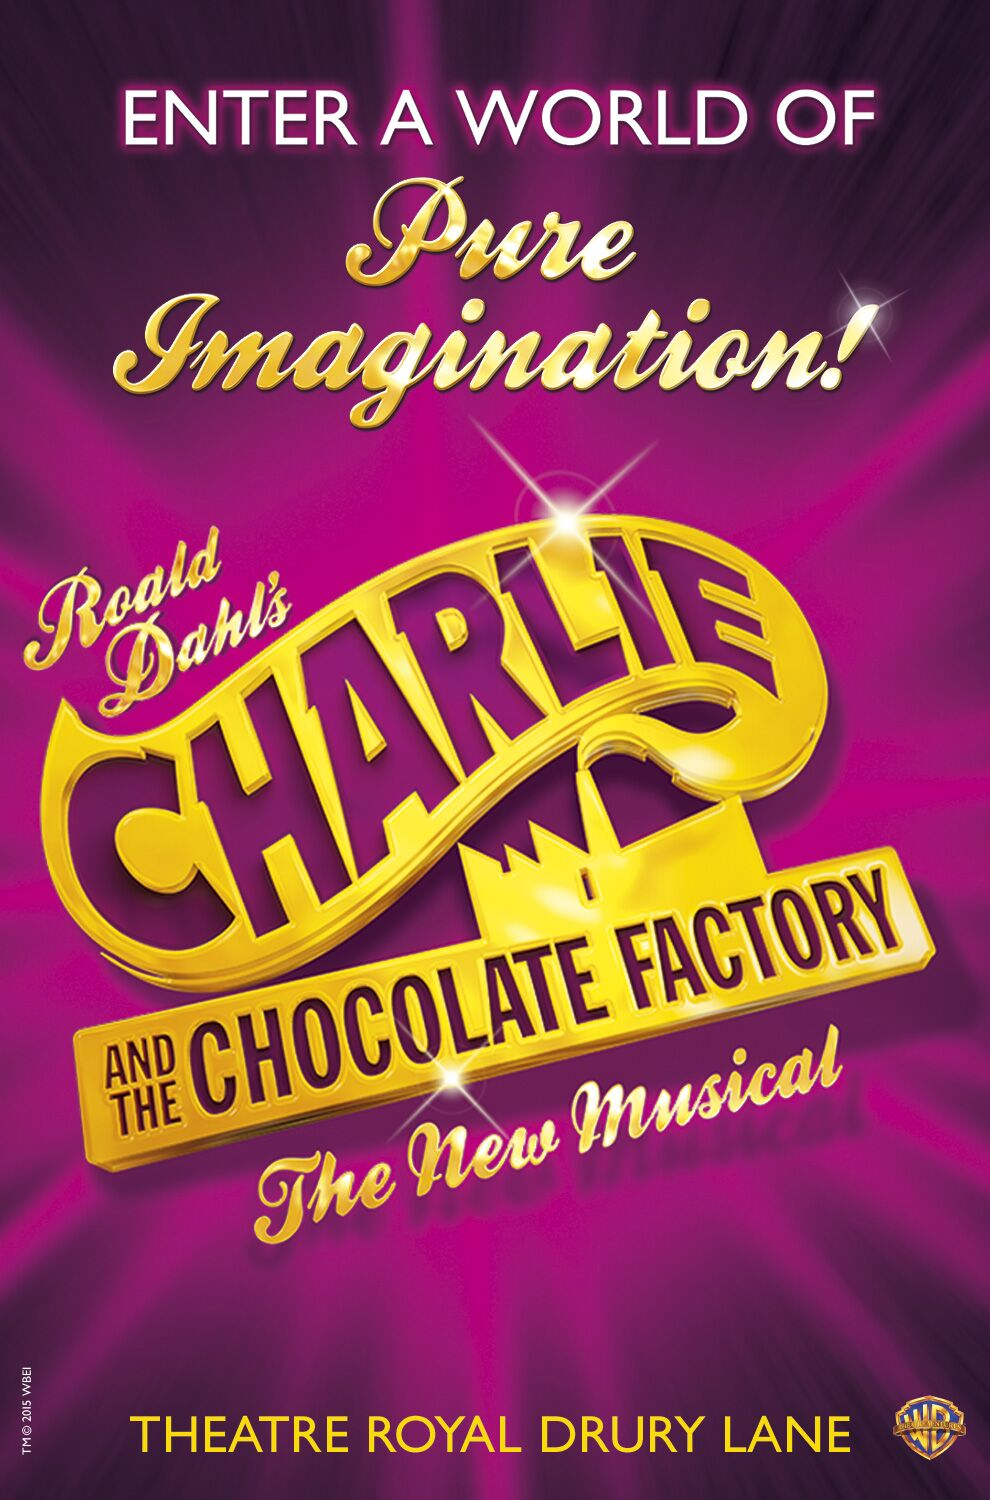 Charlie-and-the-Chocolate-Factory_London